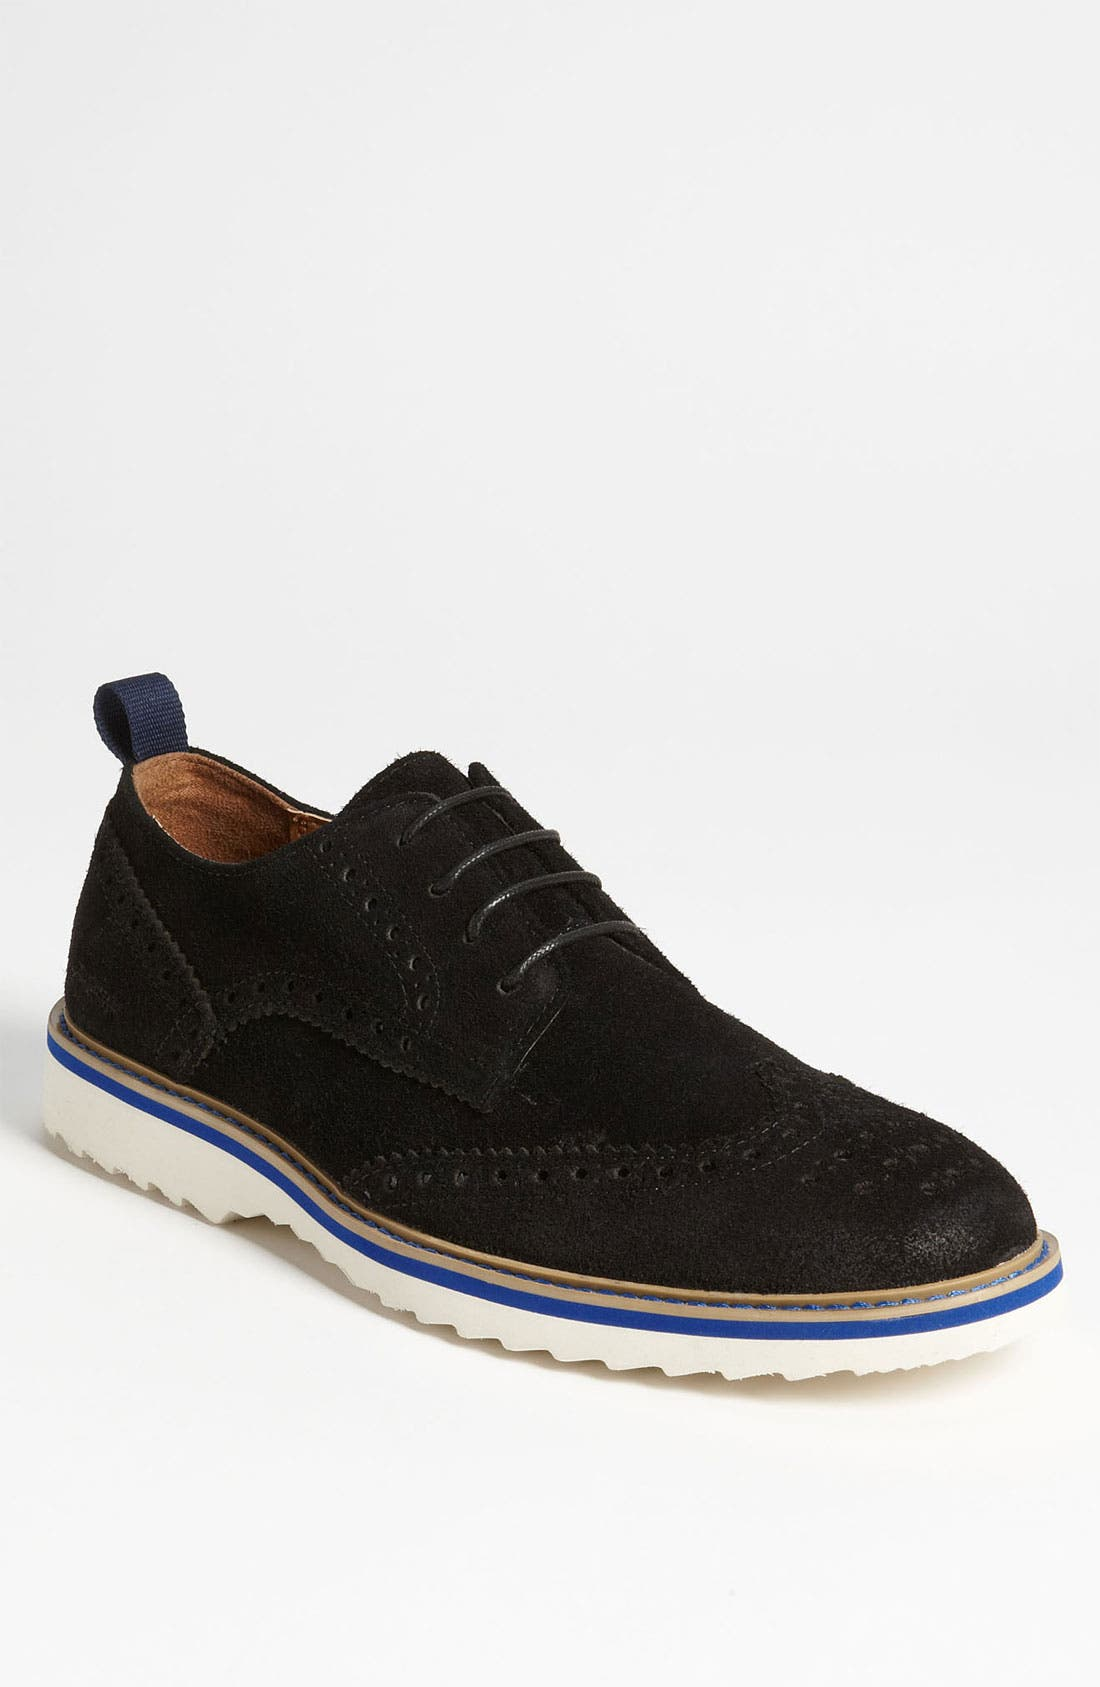 Main Image - Kenneth Cole Reaction 'Media Hype' Wingtip